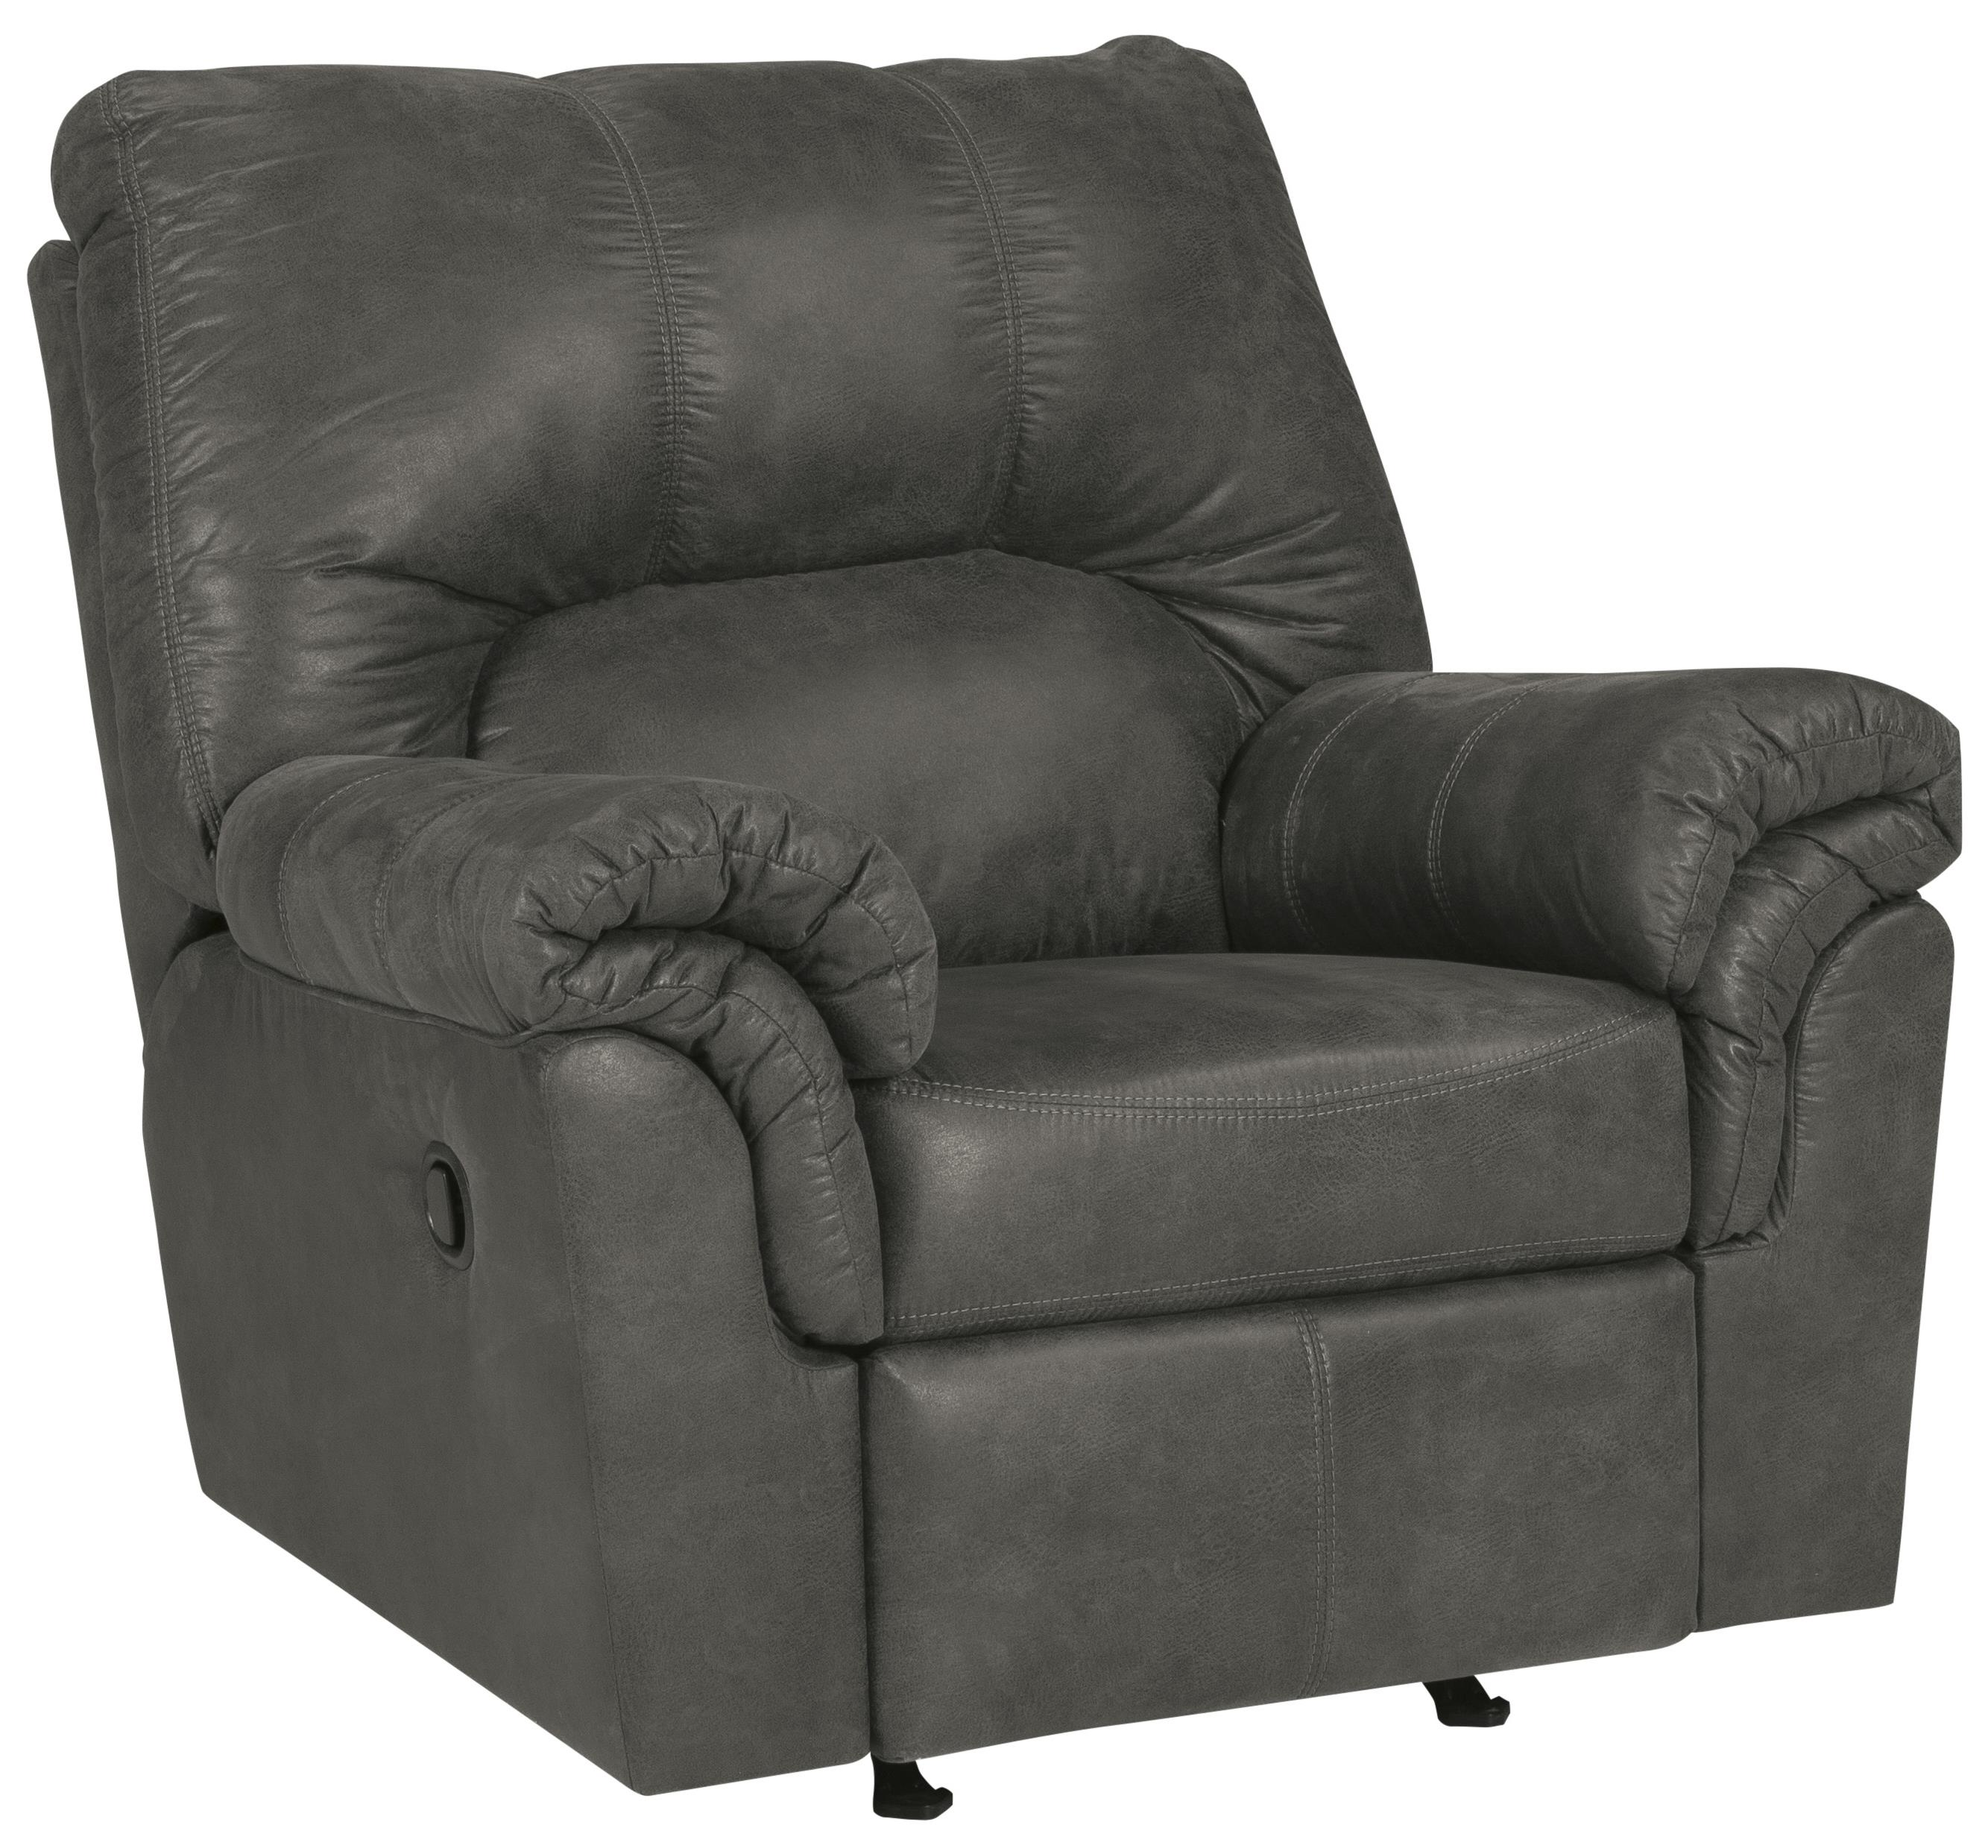 Faux Leather Rocker Recliner with Pillow Arms